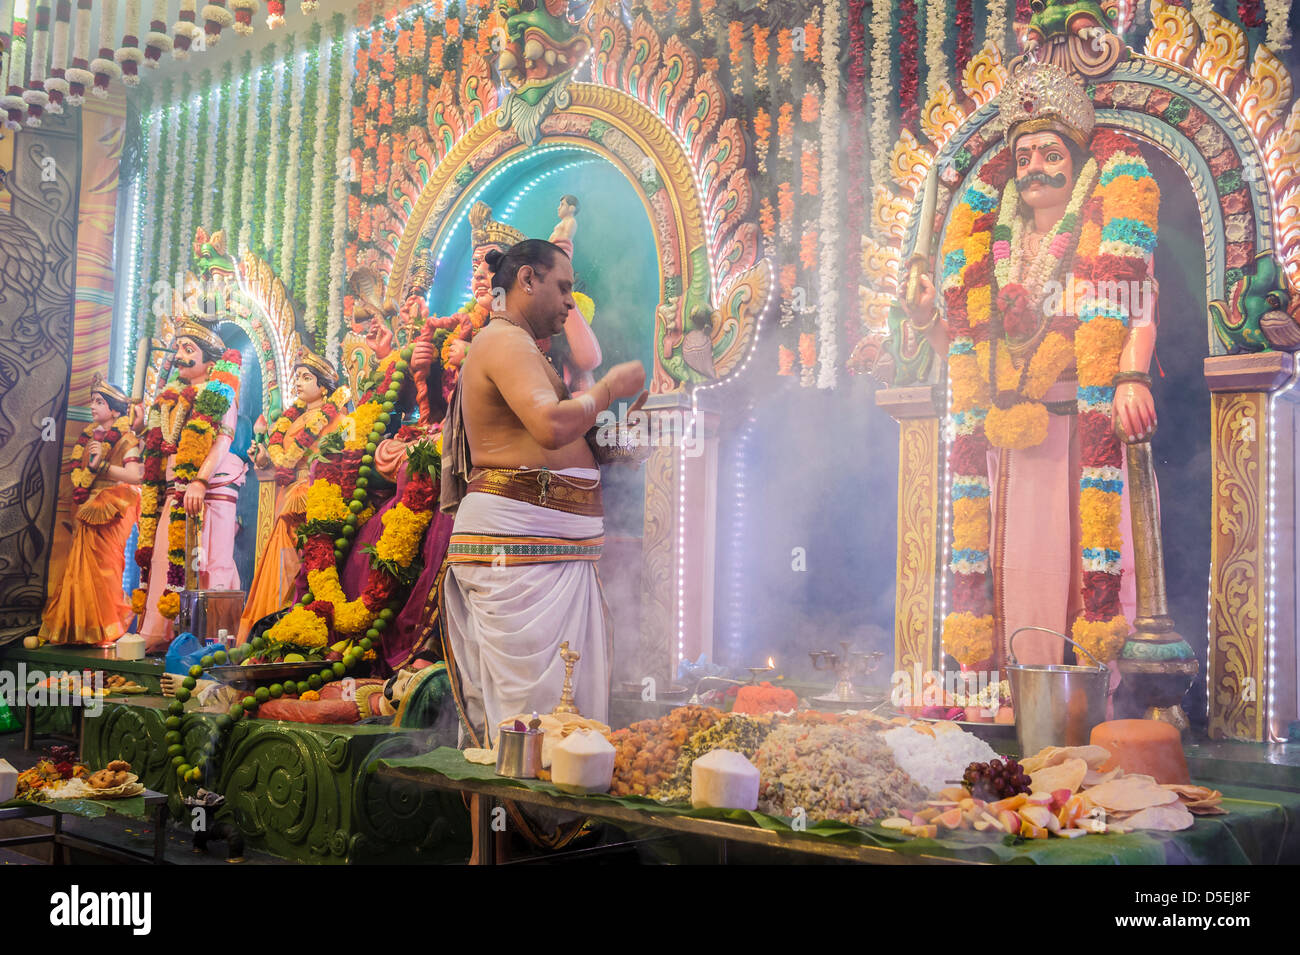 Priest performing a hinduist ceremony, Singapore, Asia. - Stock Image